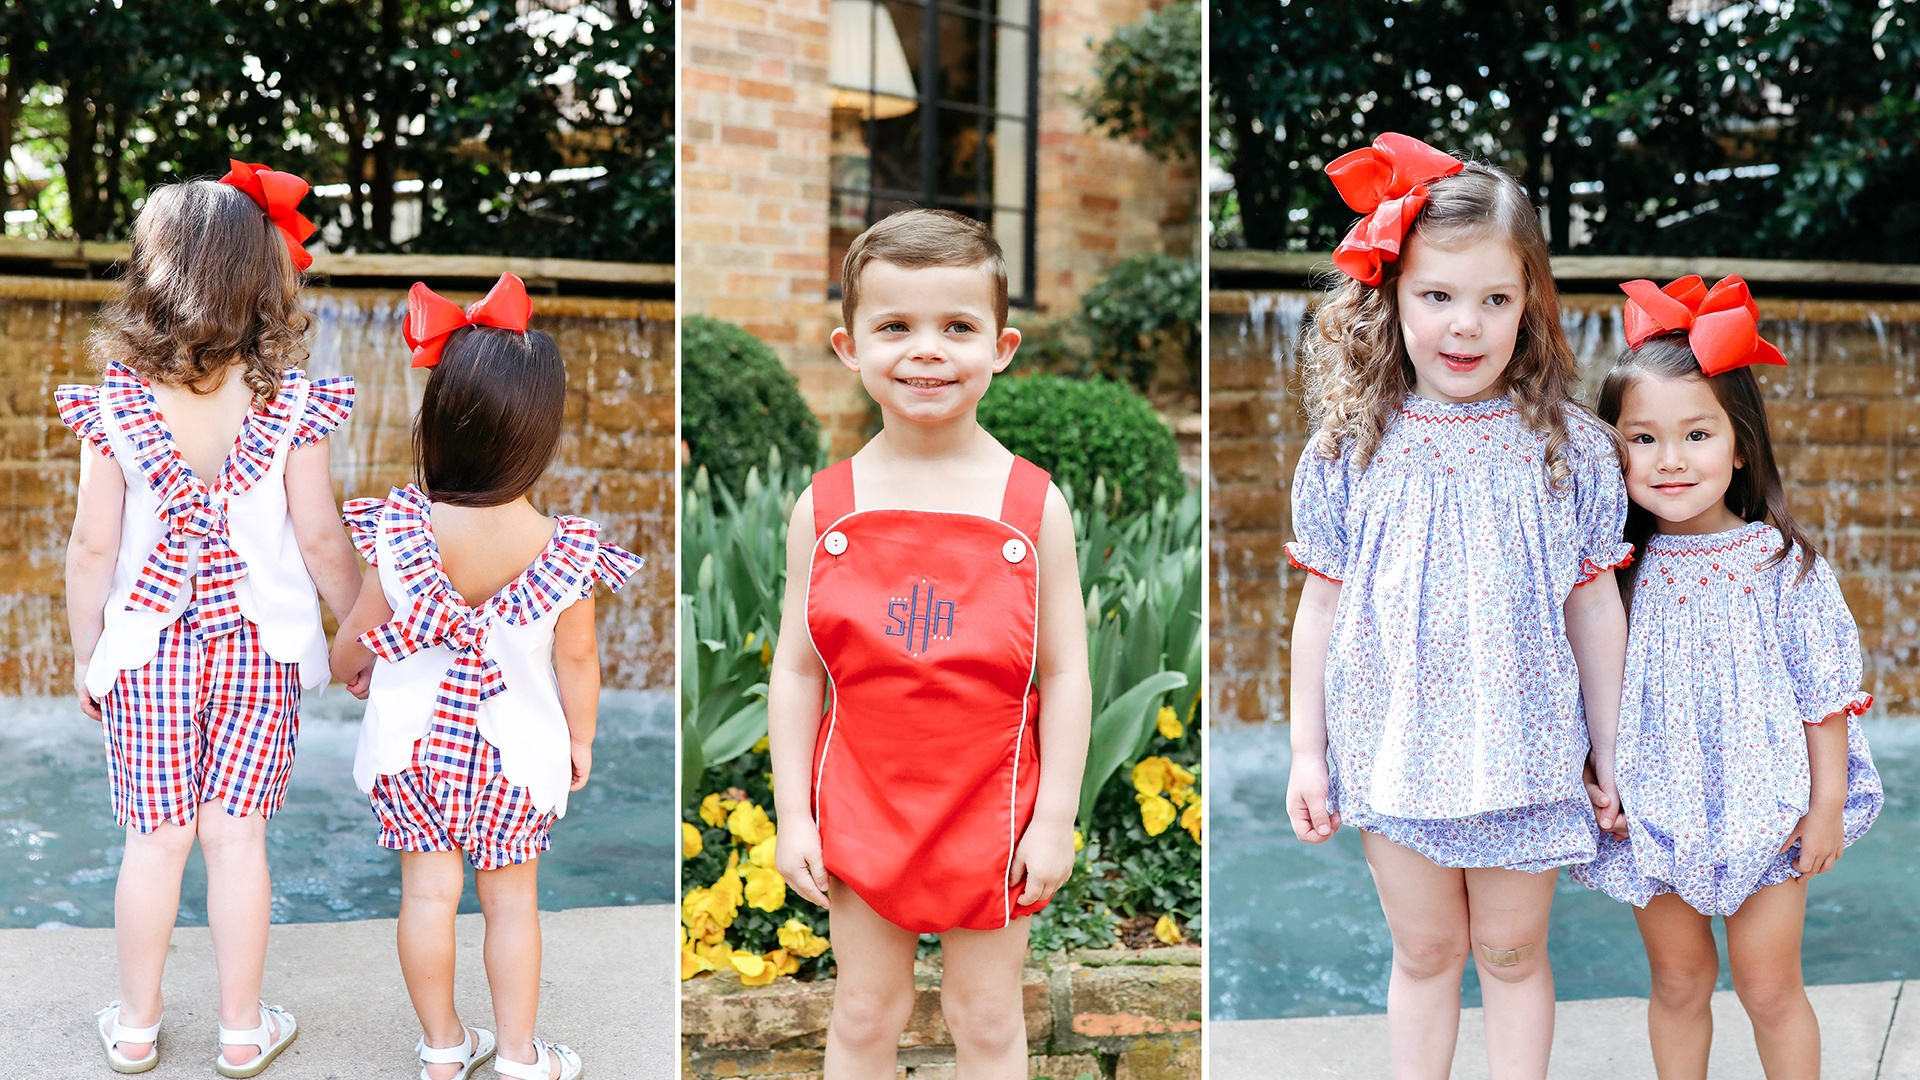 Children's Red, White, and Blue Outifts